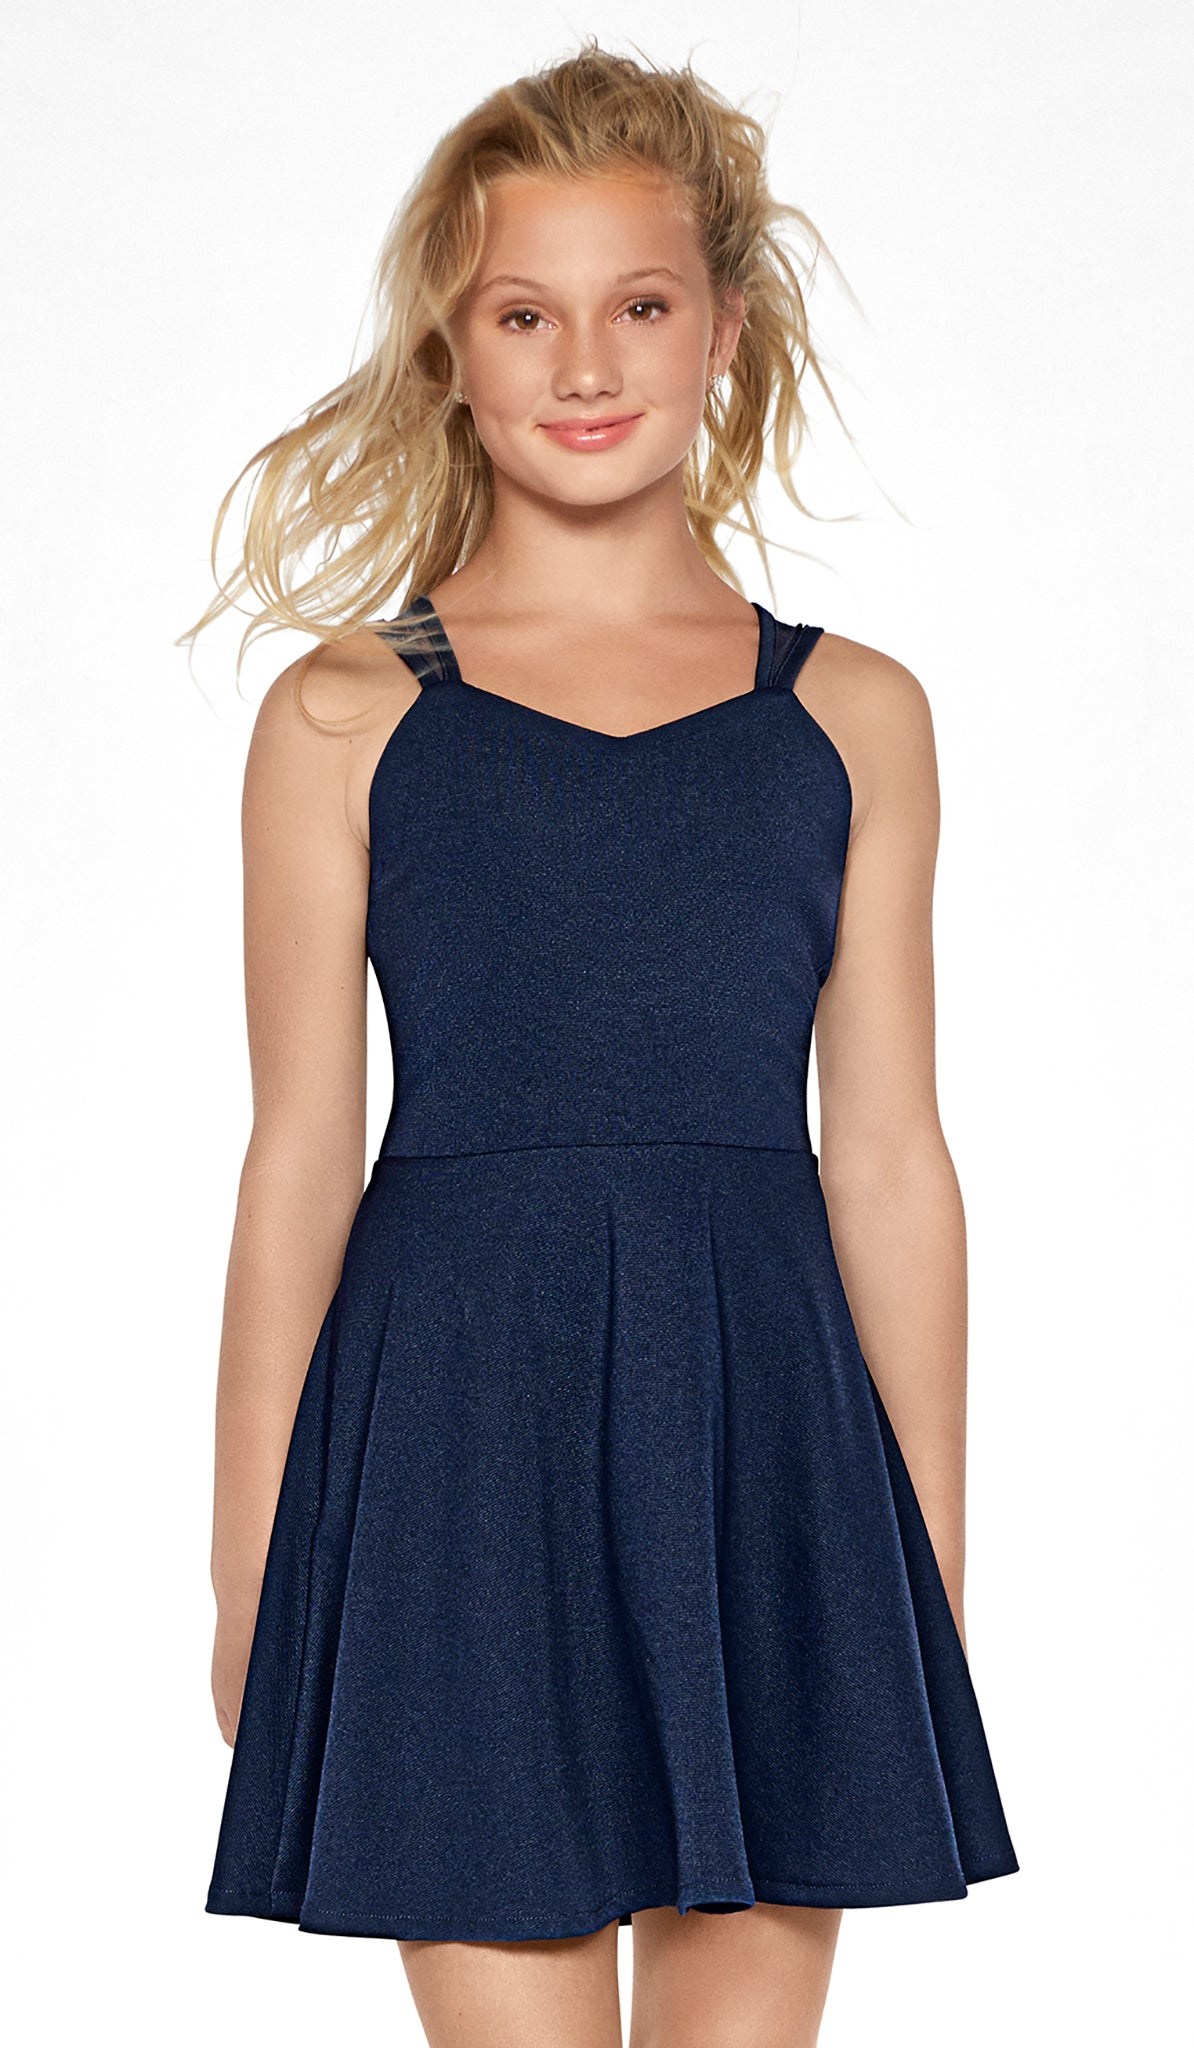 THE JACKIE DRESS - Sallymiller.com - [variant title] - | Event & Party Dresses for Tween Girls & Juniors | Weddings Dresses, Bat Mitzvah Dresses, Sweet Sixteen Dresses, Graduation Dresses, Birthday Party Dresses, Bar Mitzvah Dresses, Cotillion Dresses